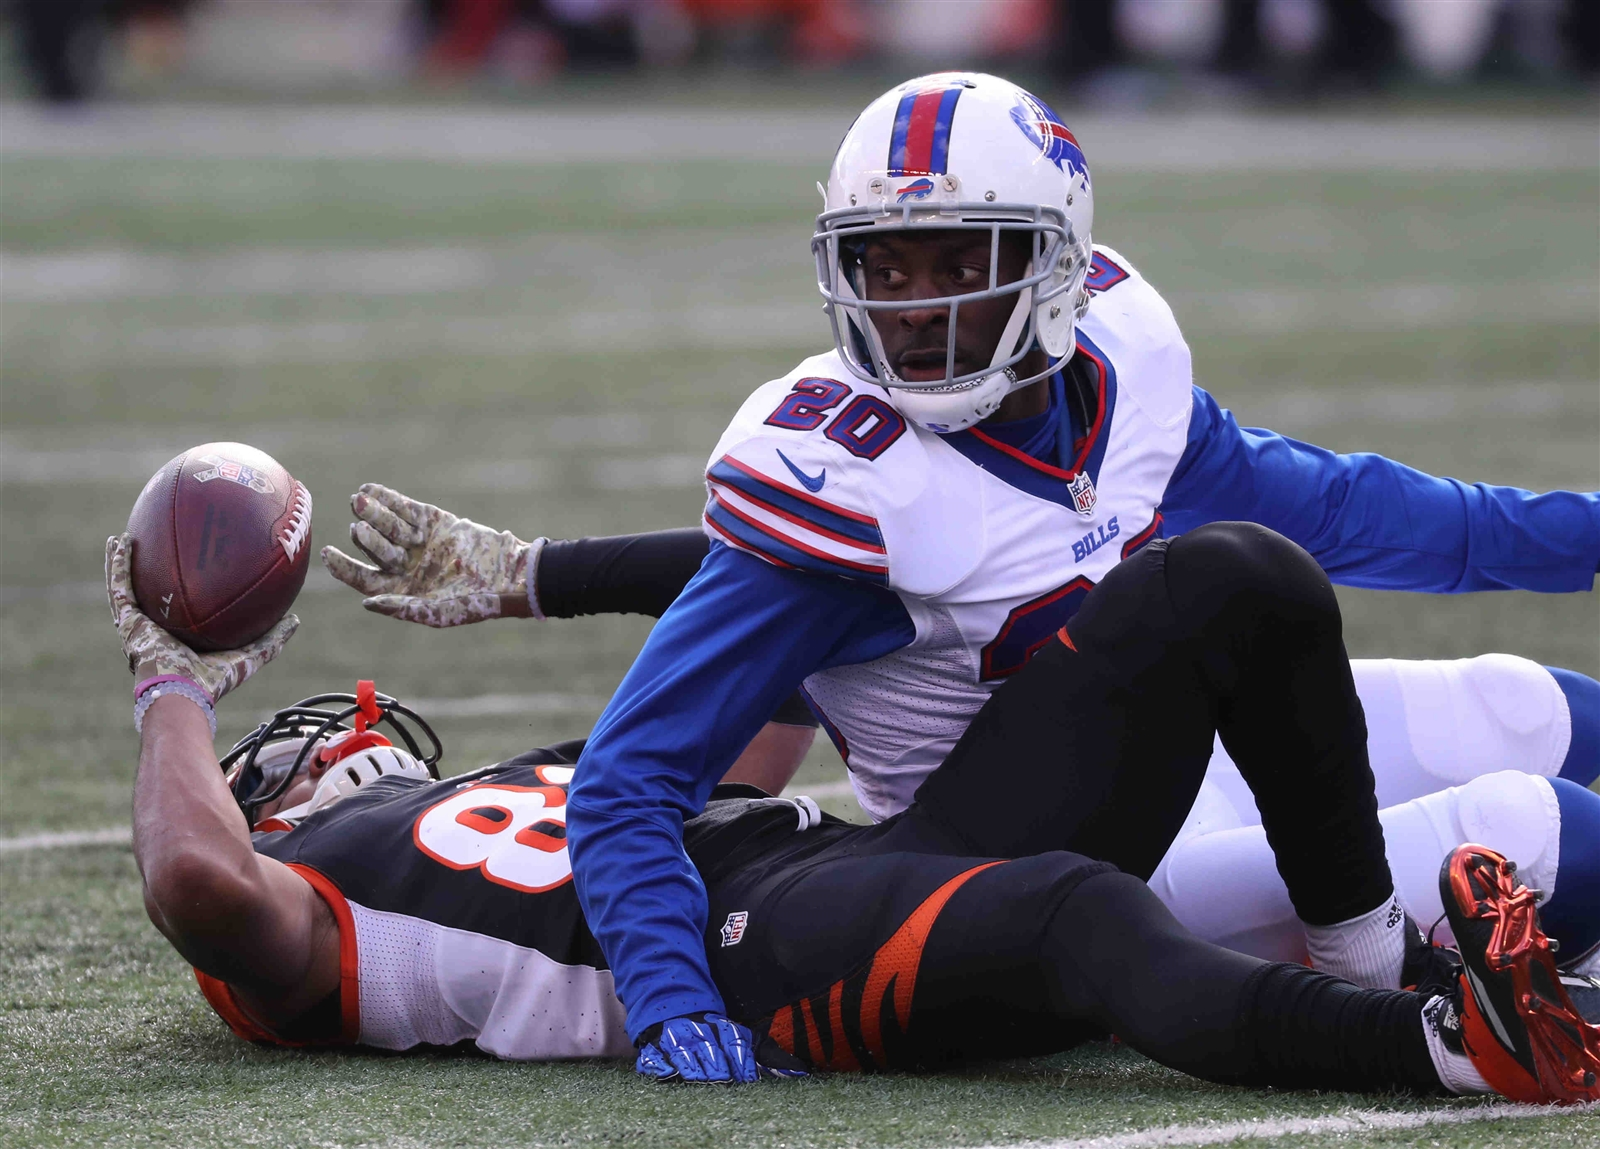 Bills safety Corey Graham took every defensive snap during his team's Week 11 win over the Bengals. (James P. McCoy/Buffalo News)